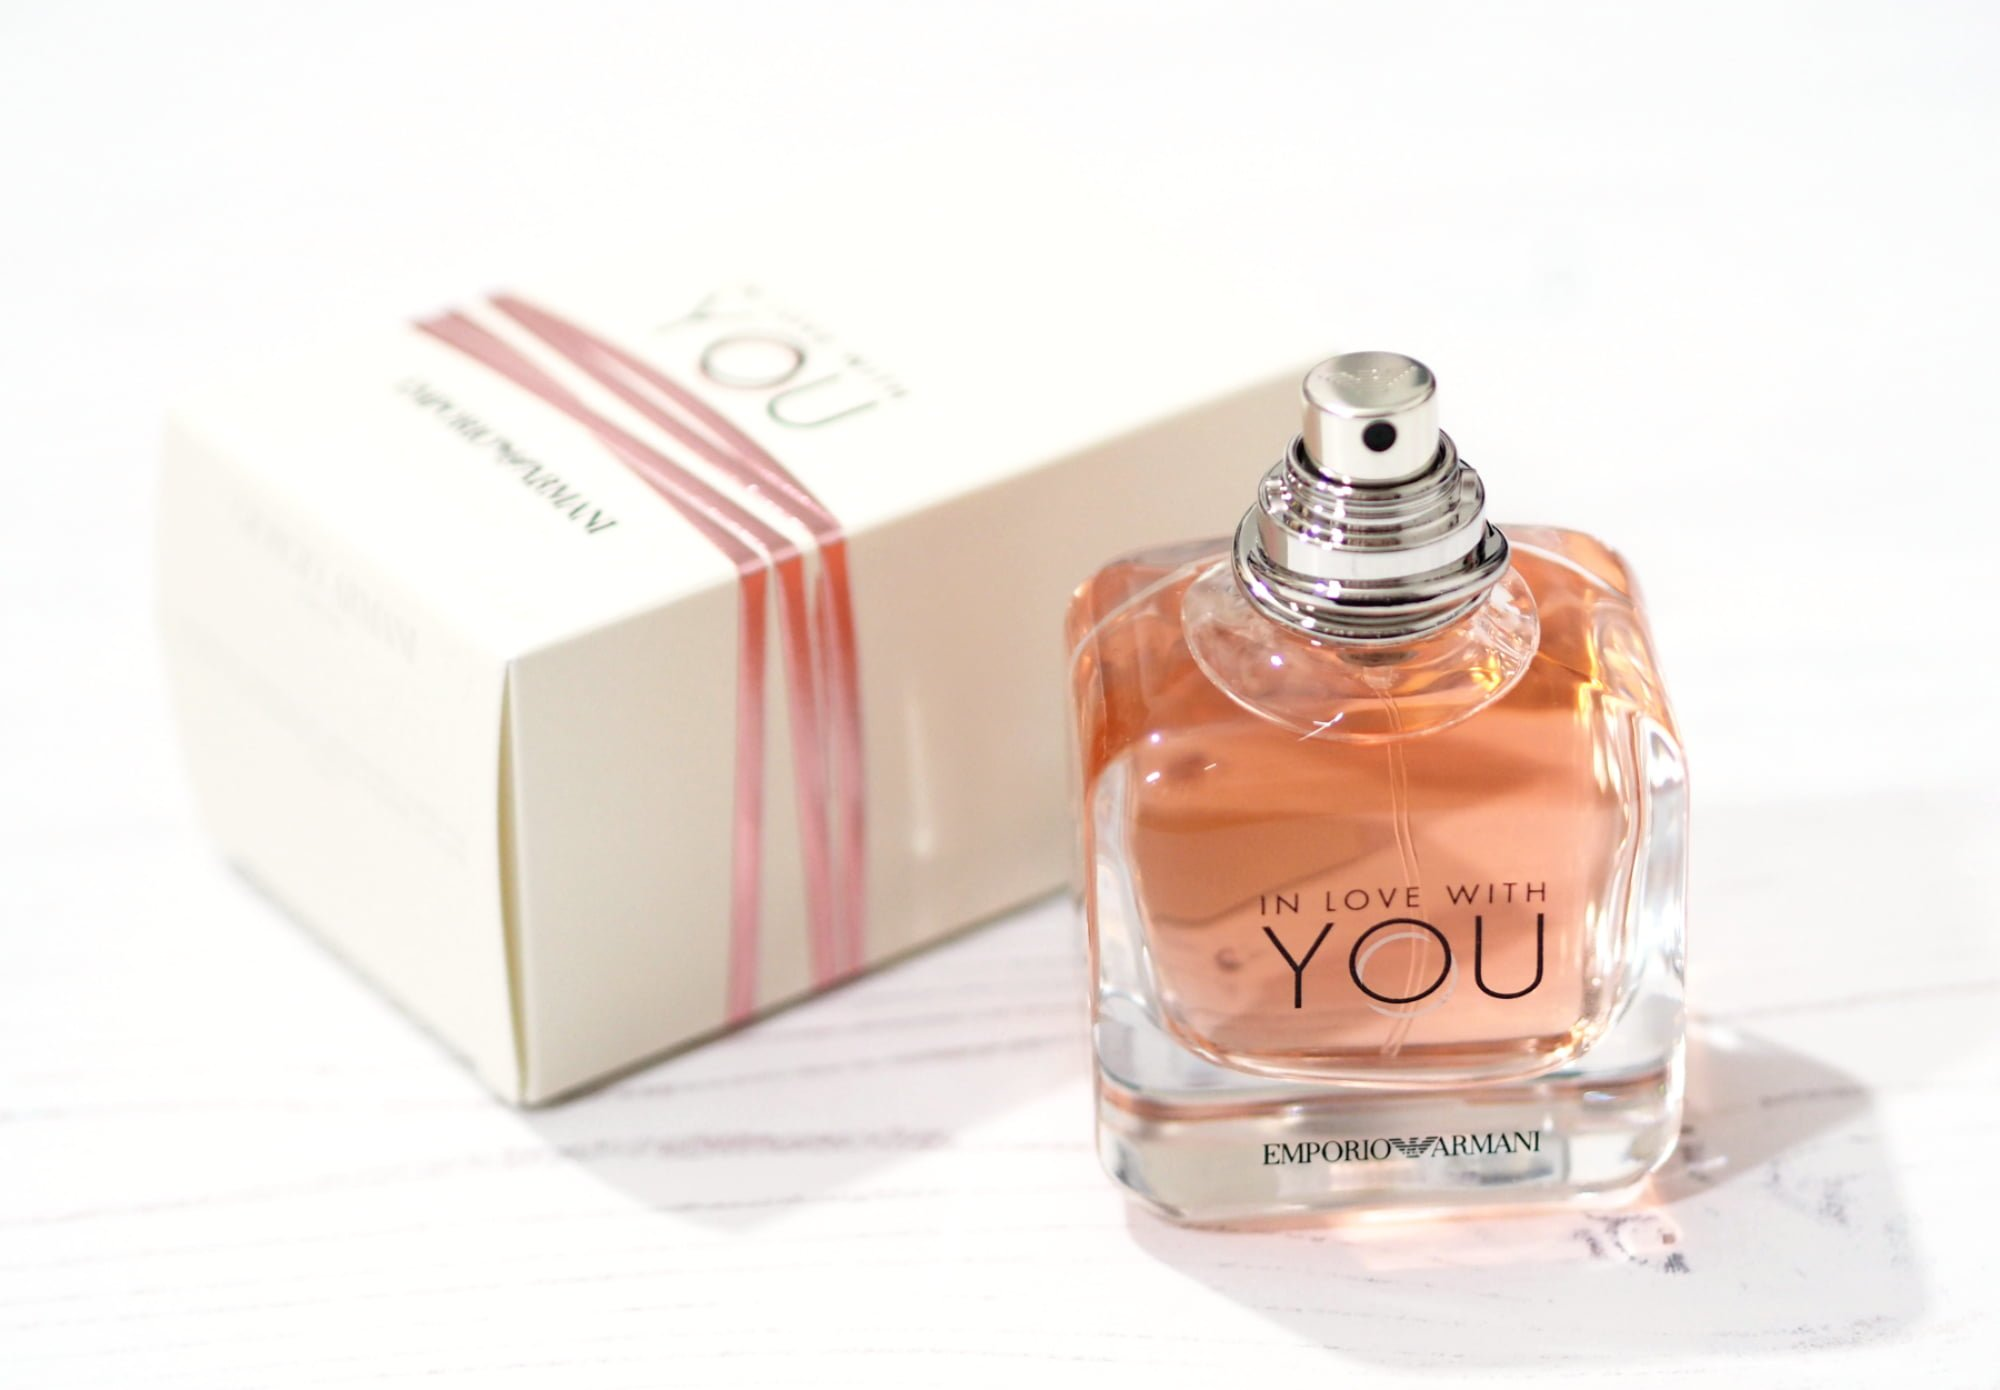 Valentine's Day Gift Guide 2019 - Emporio Armani In Love With You Eau de Parfum